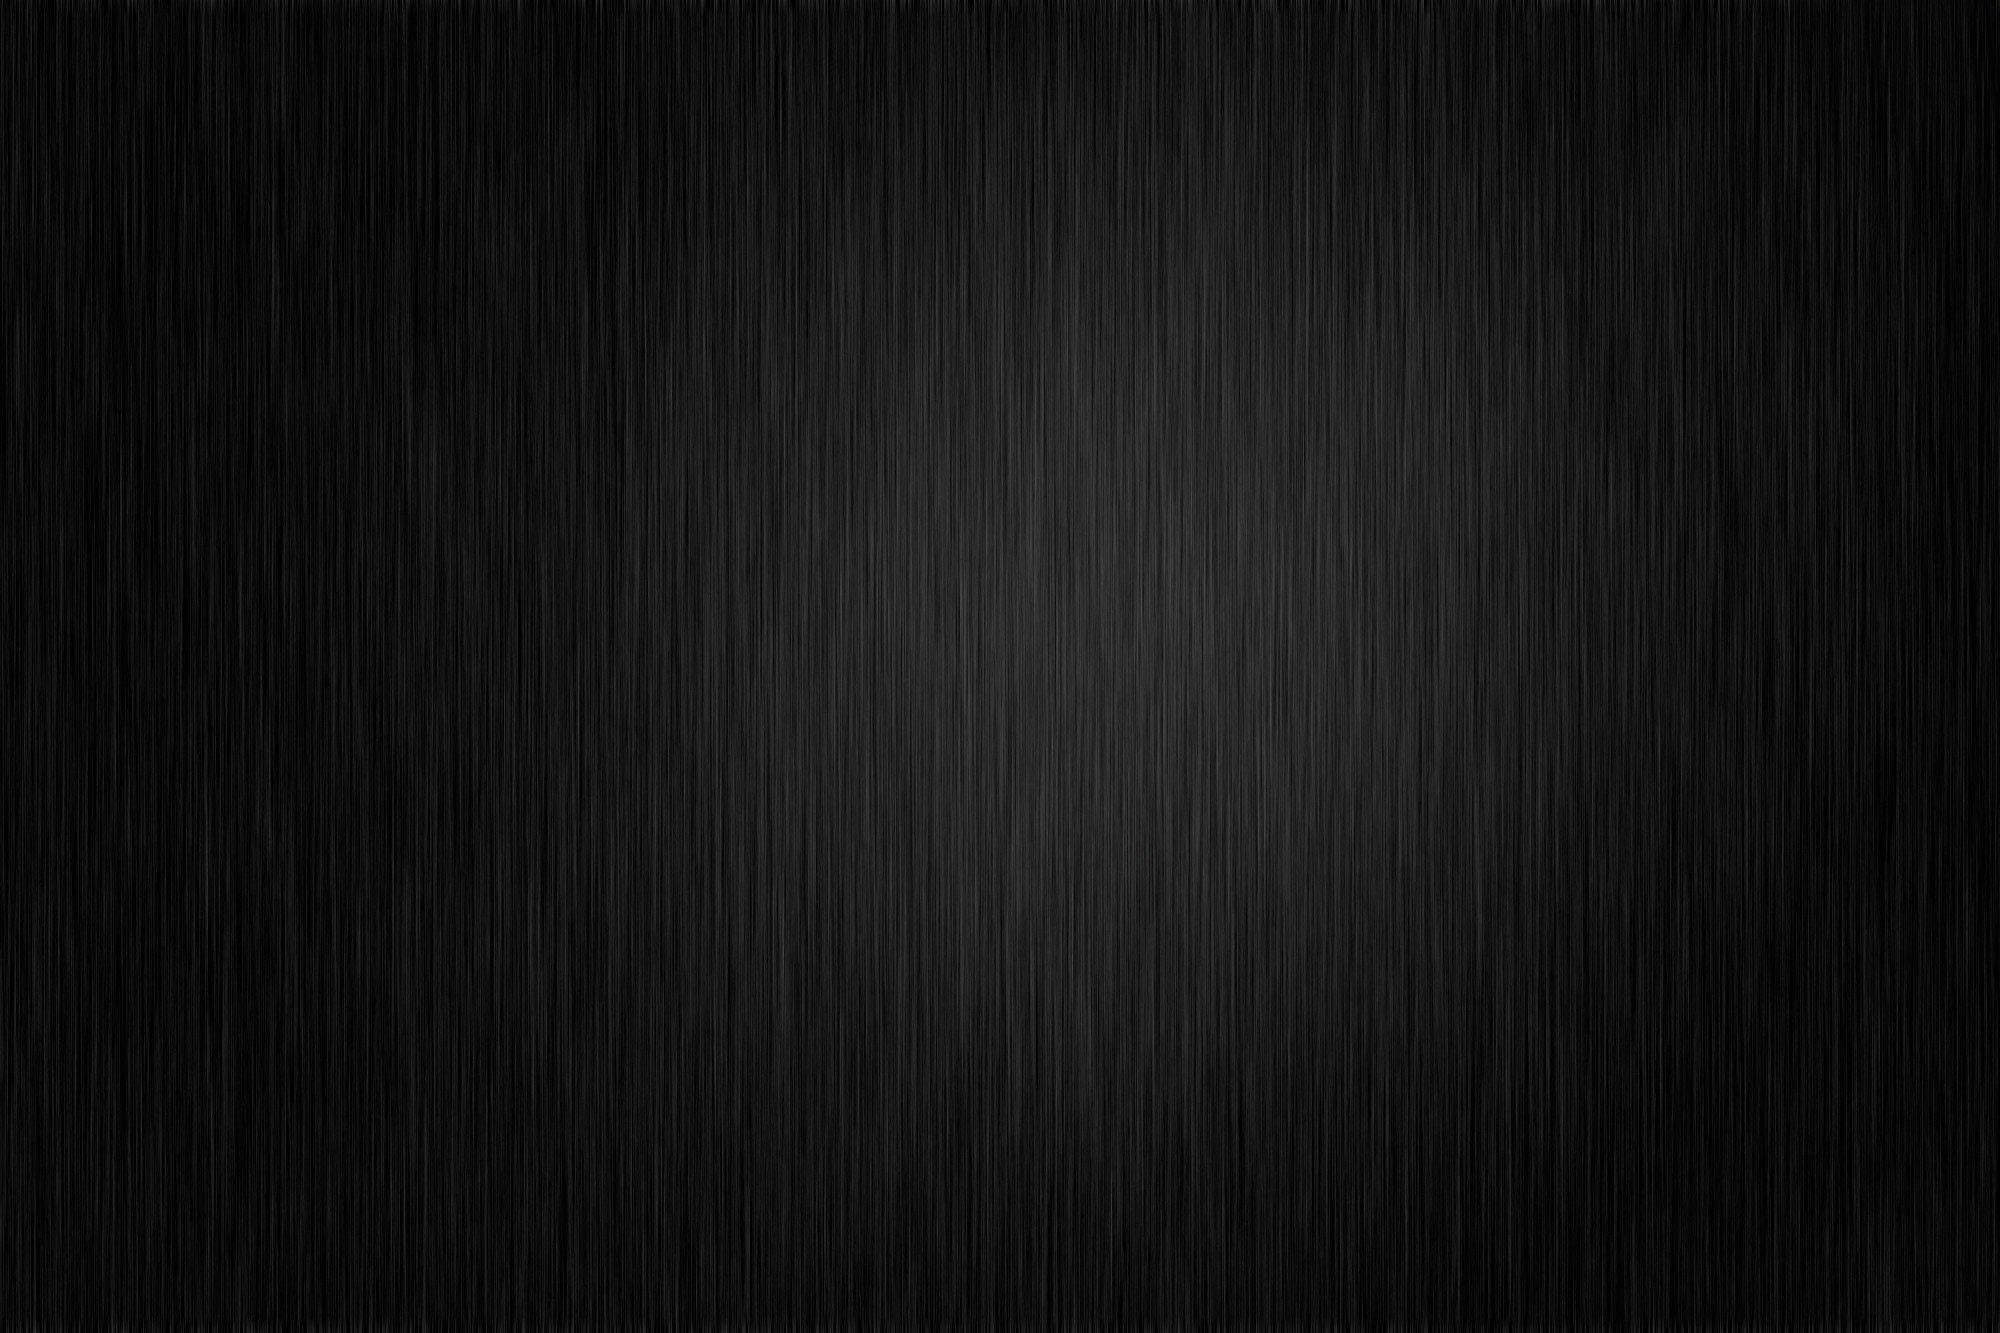 Simple-black-and-white-liniar-background-hd-wallpaper